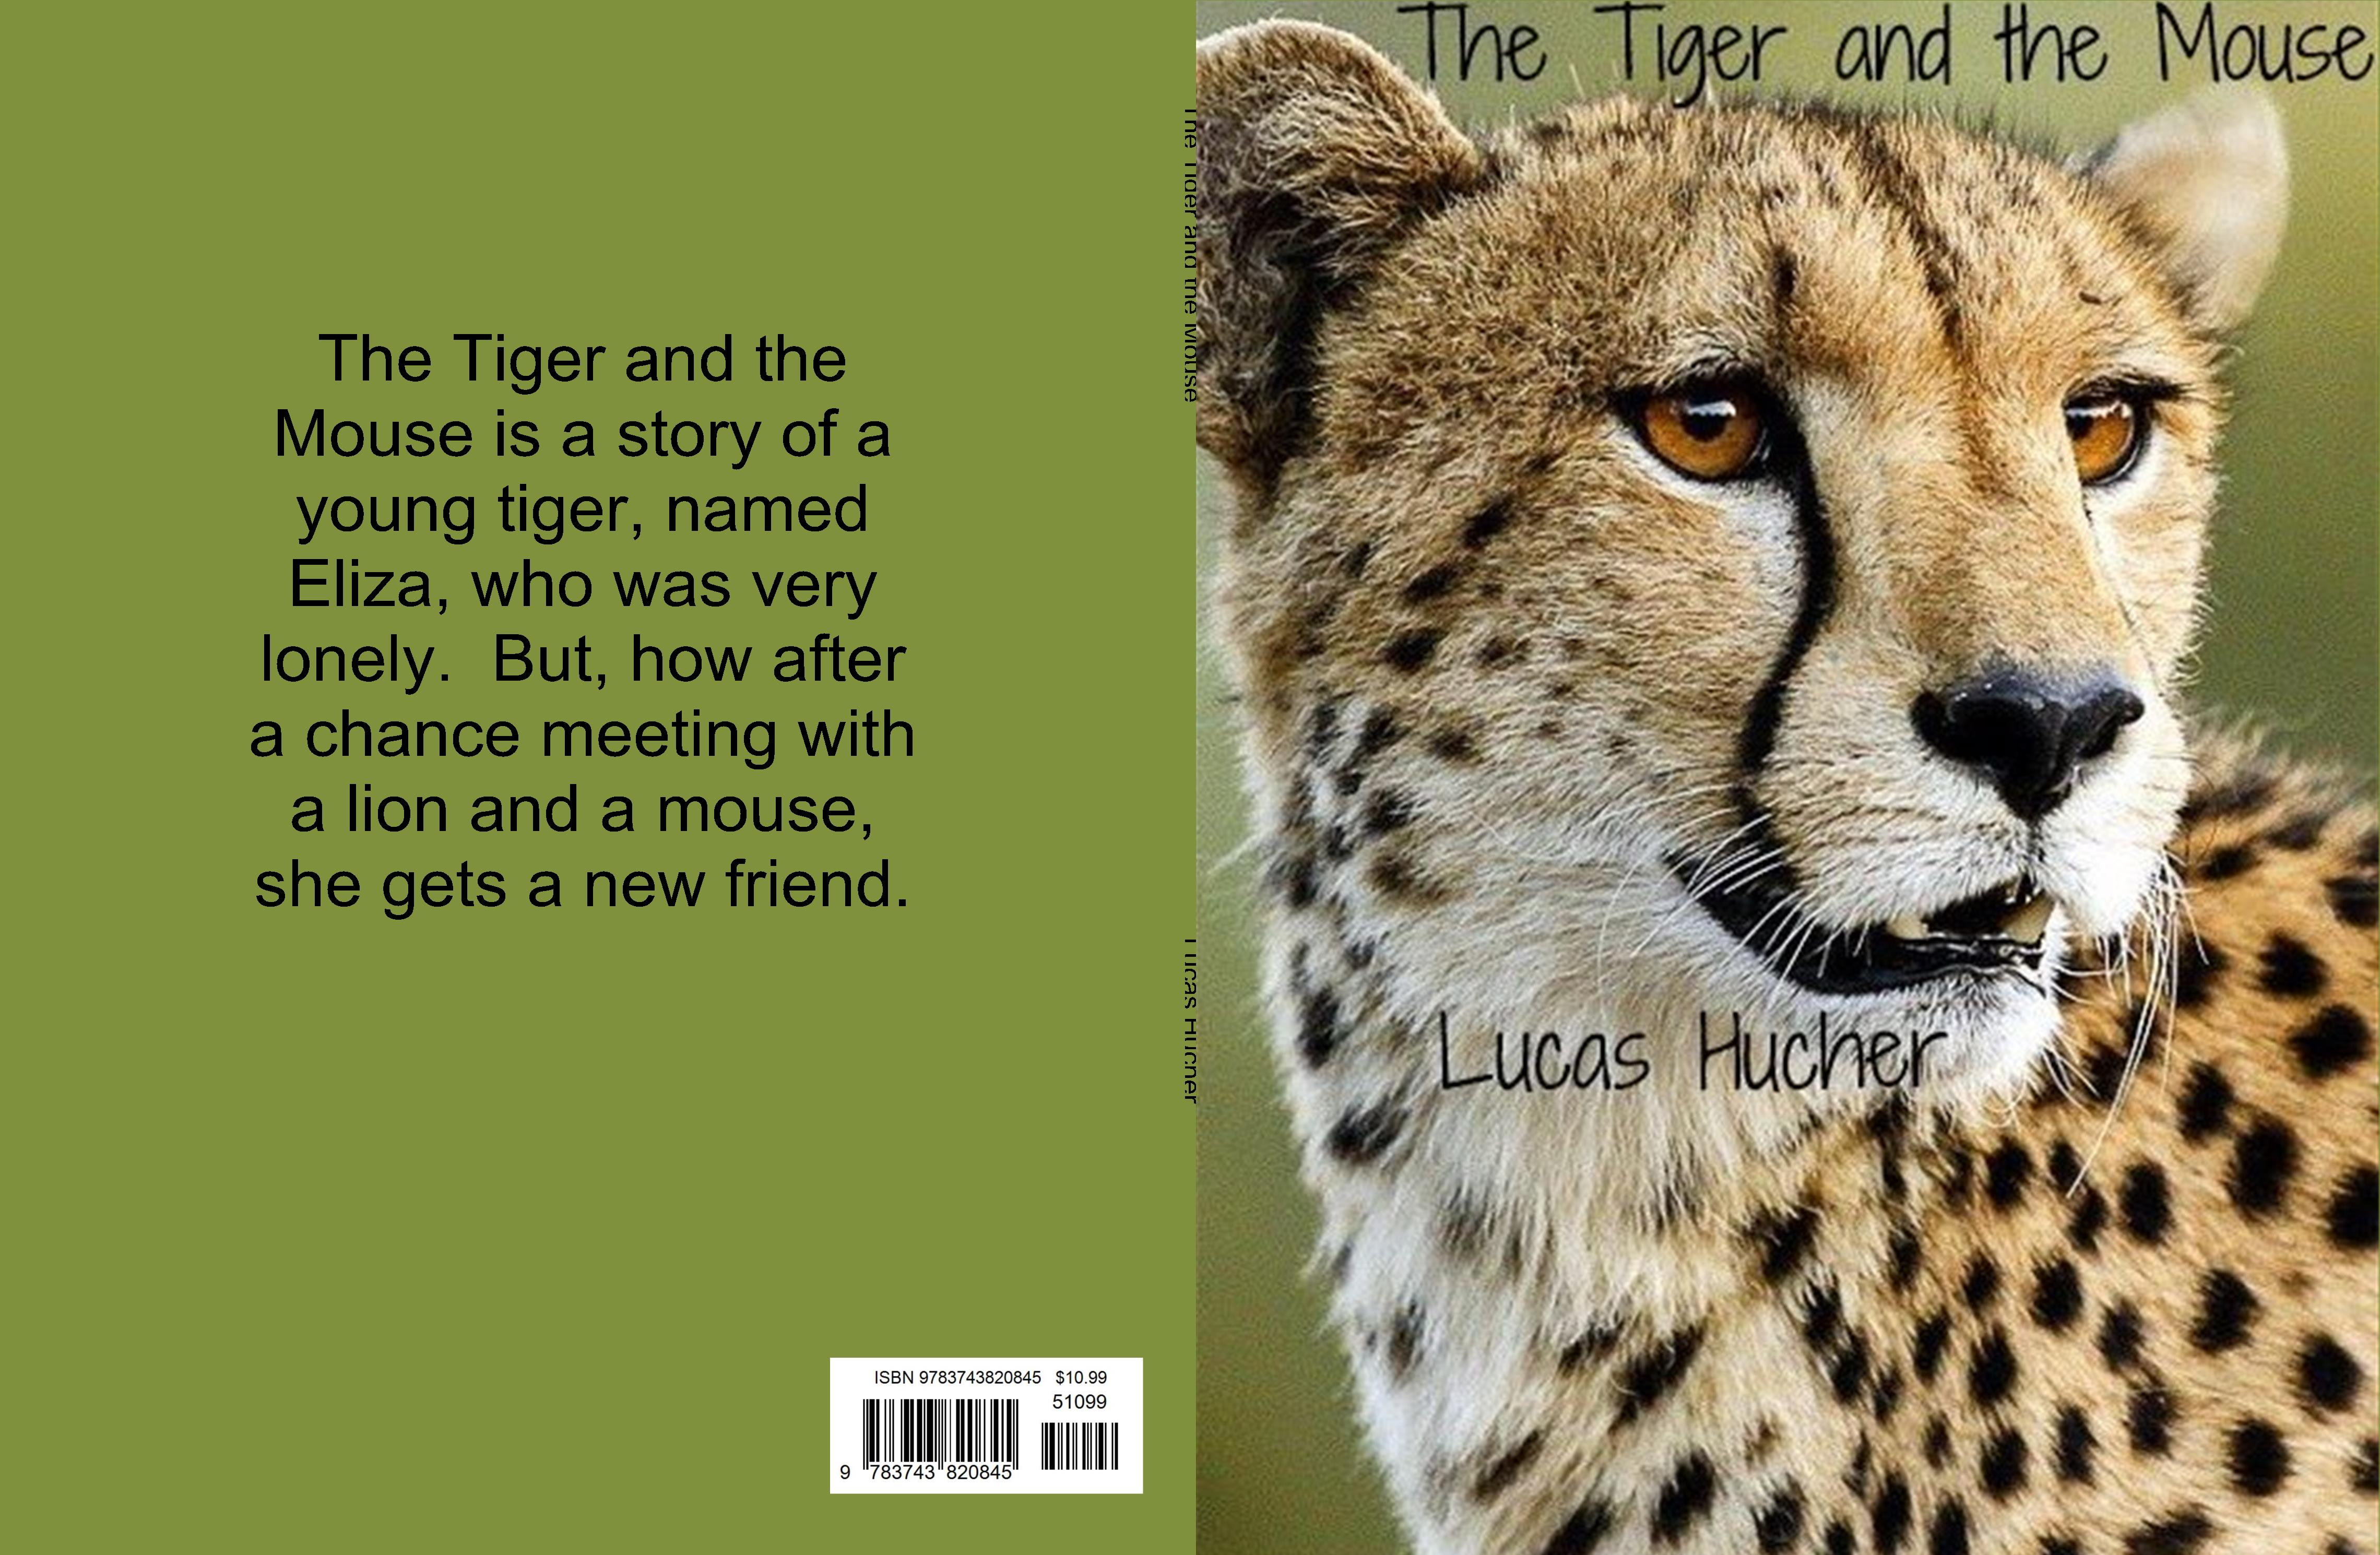 The Tiger and the Mouse cover image